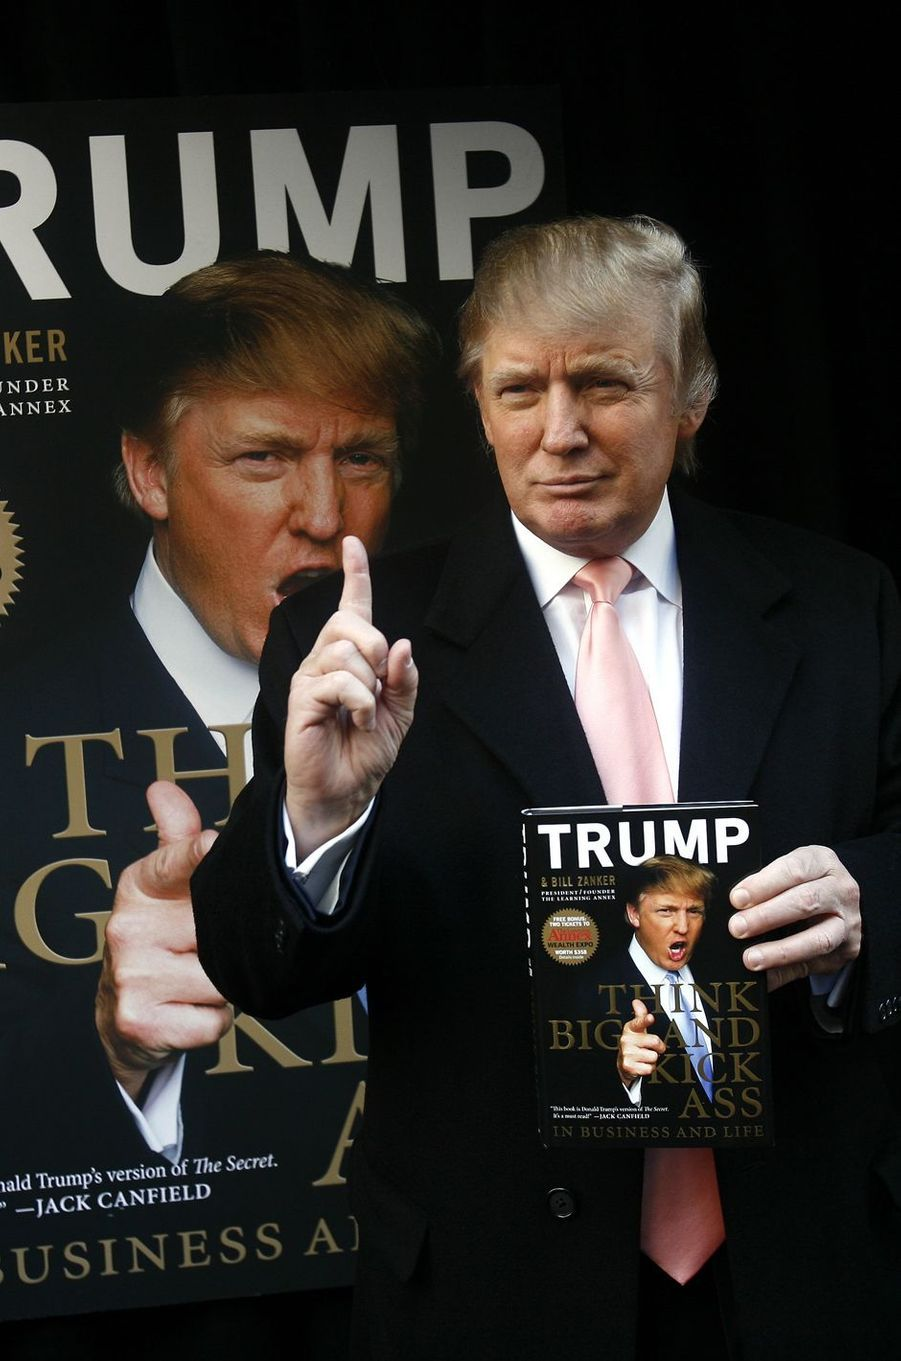 Donald Trump et son livre «Think Big and Kick Ass in Business and Life», en octobre 2007.